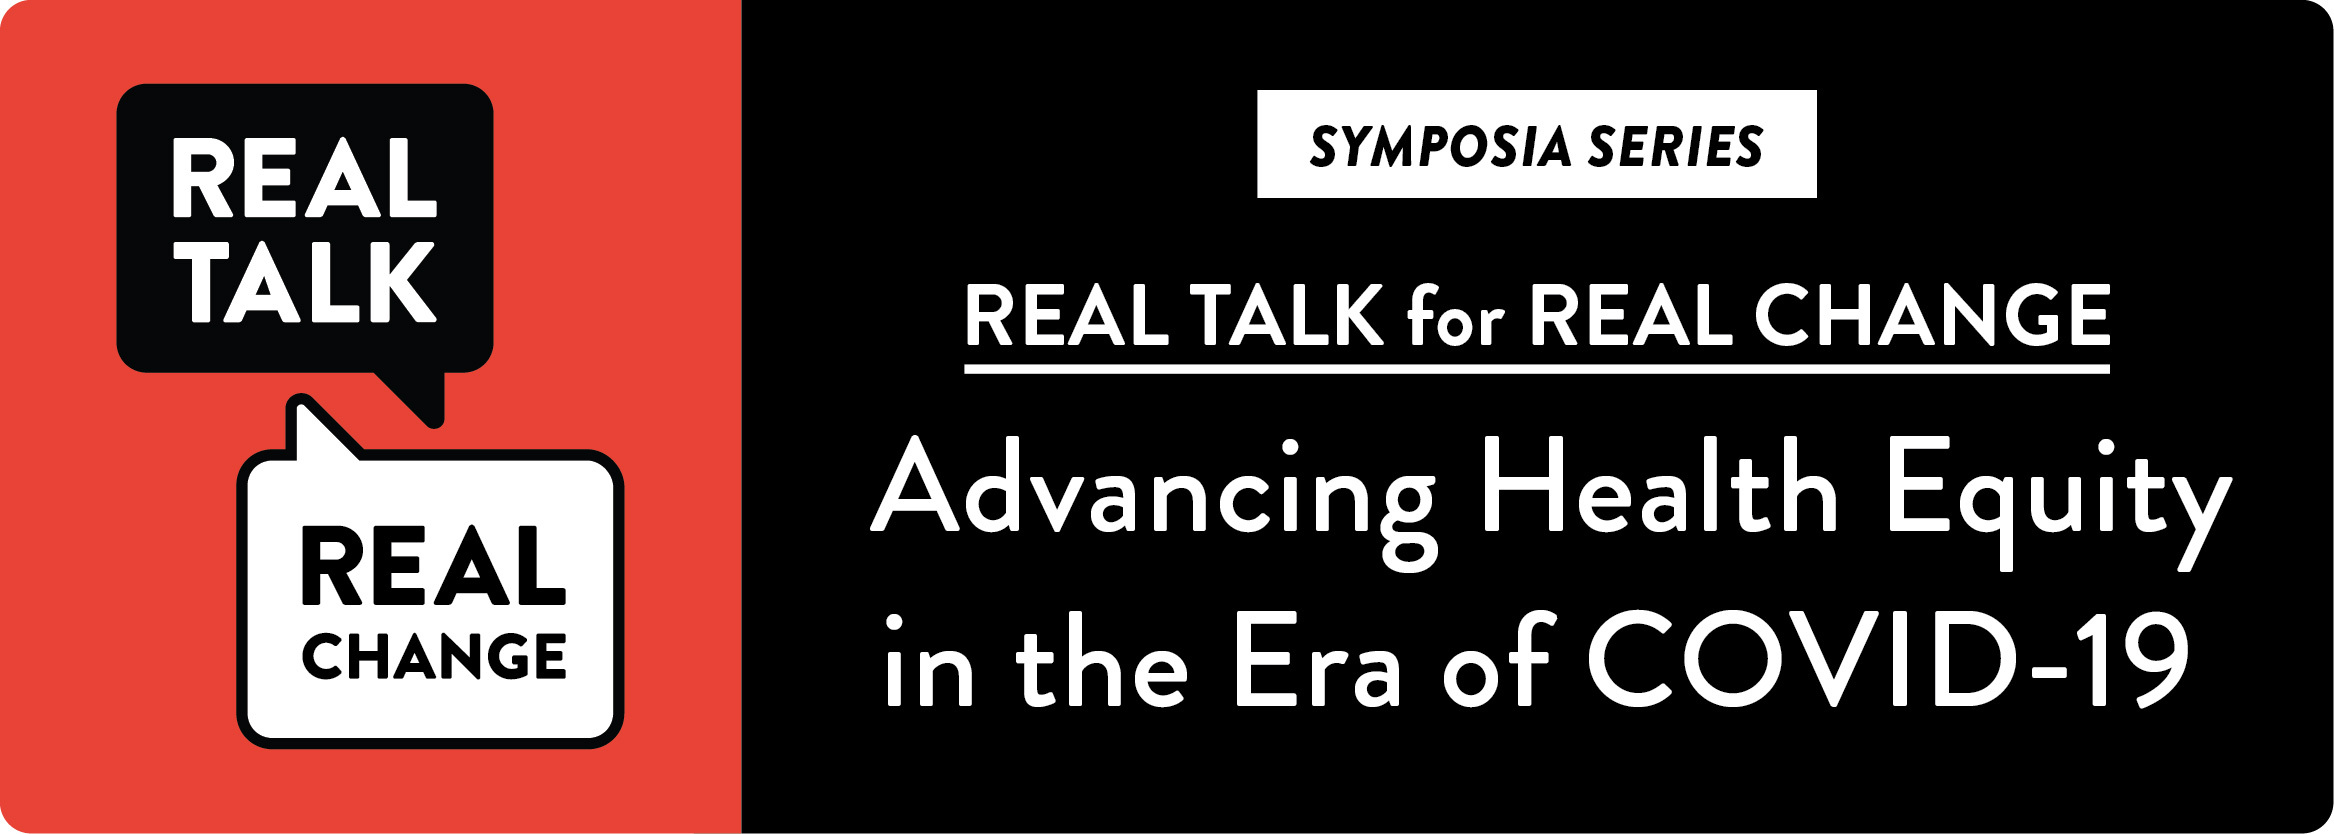 Real Talk for Real Change Series: Advancing Health Equity in the Era of COVID-19